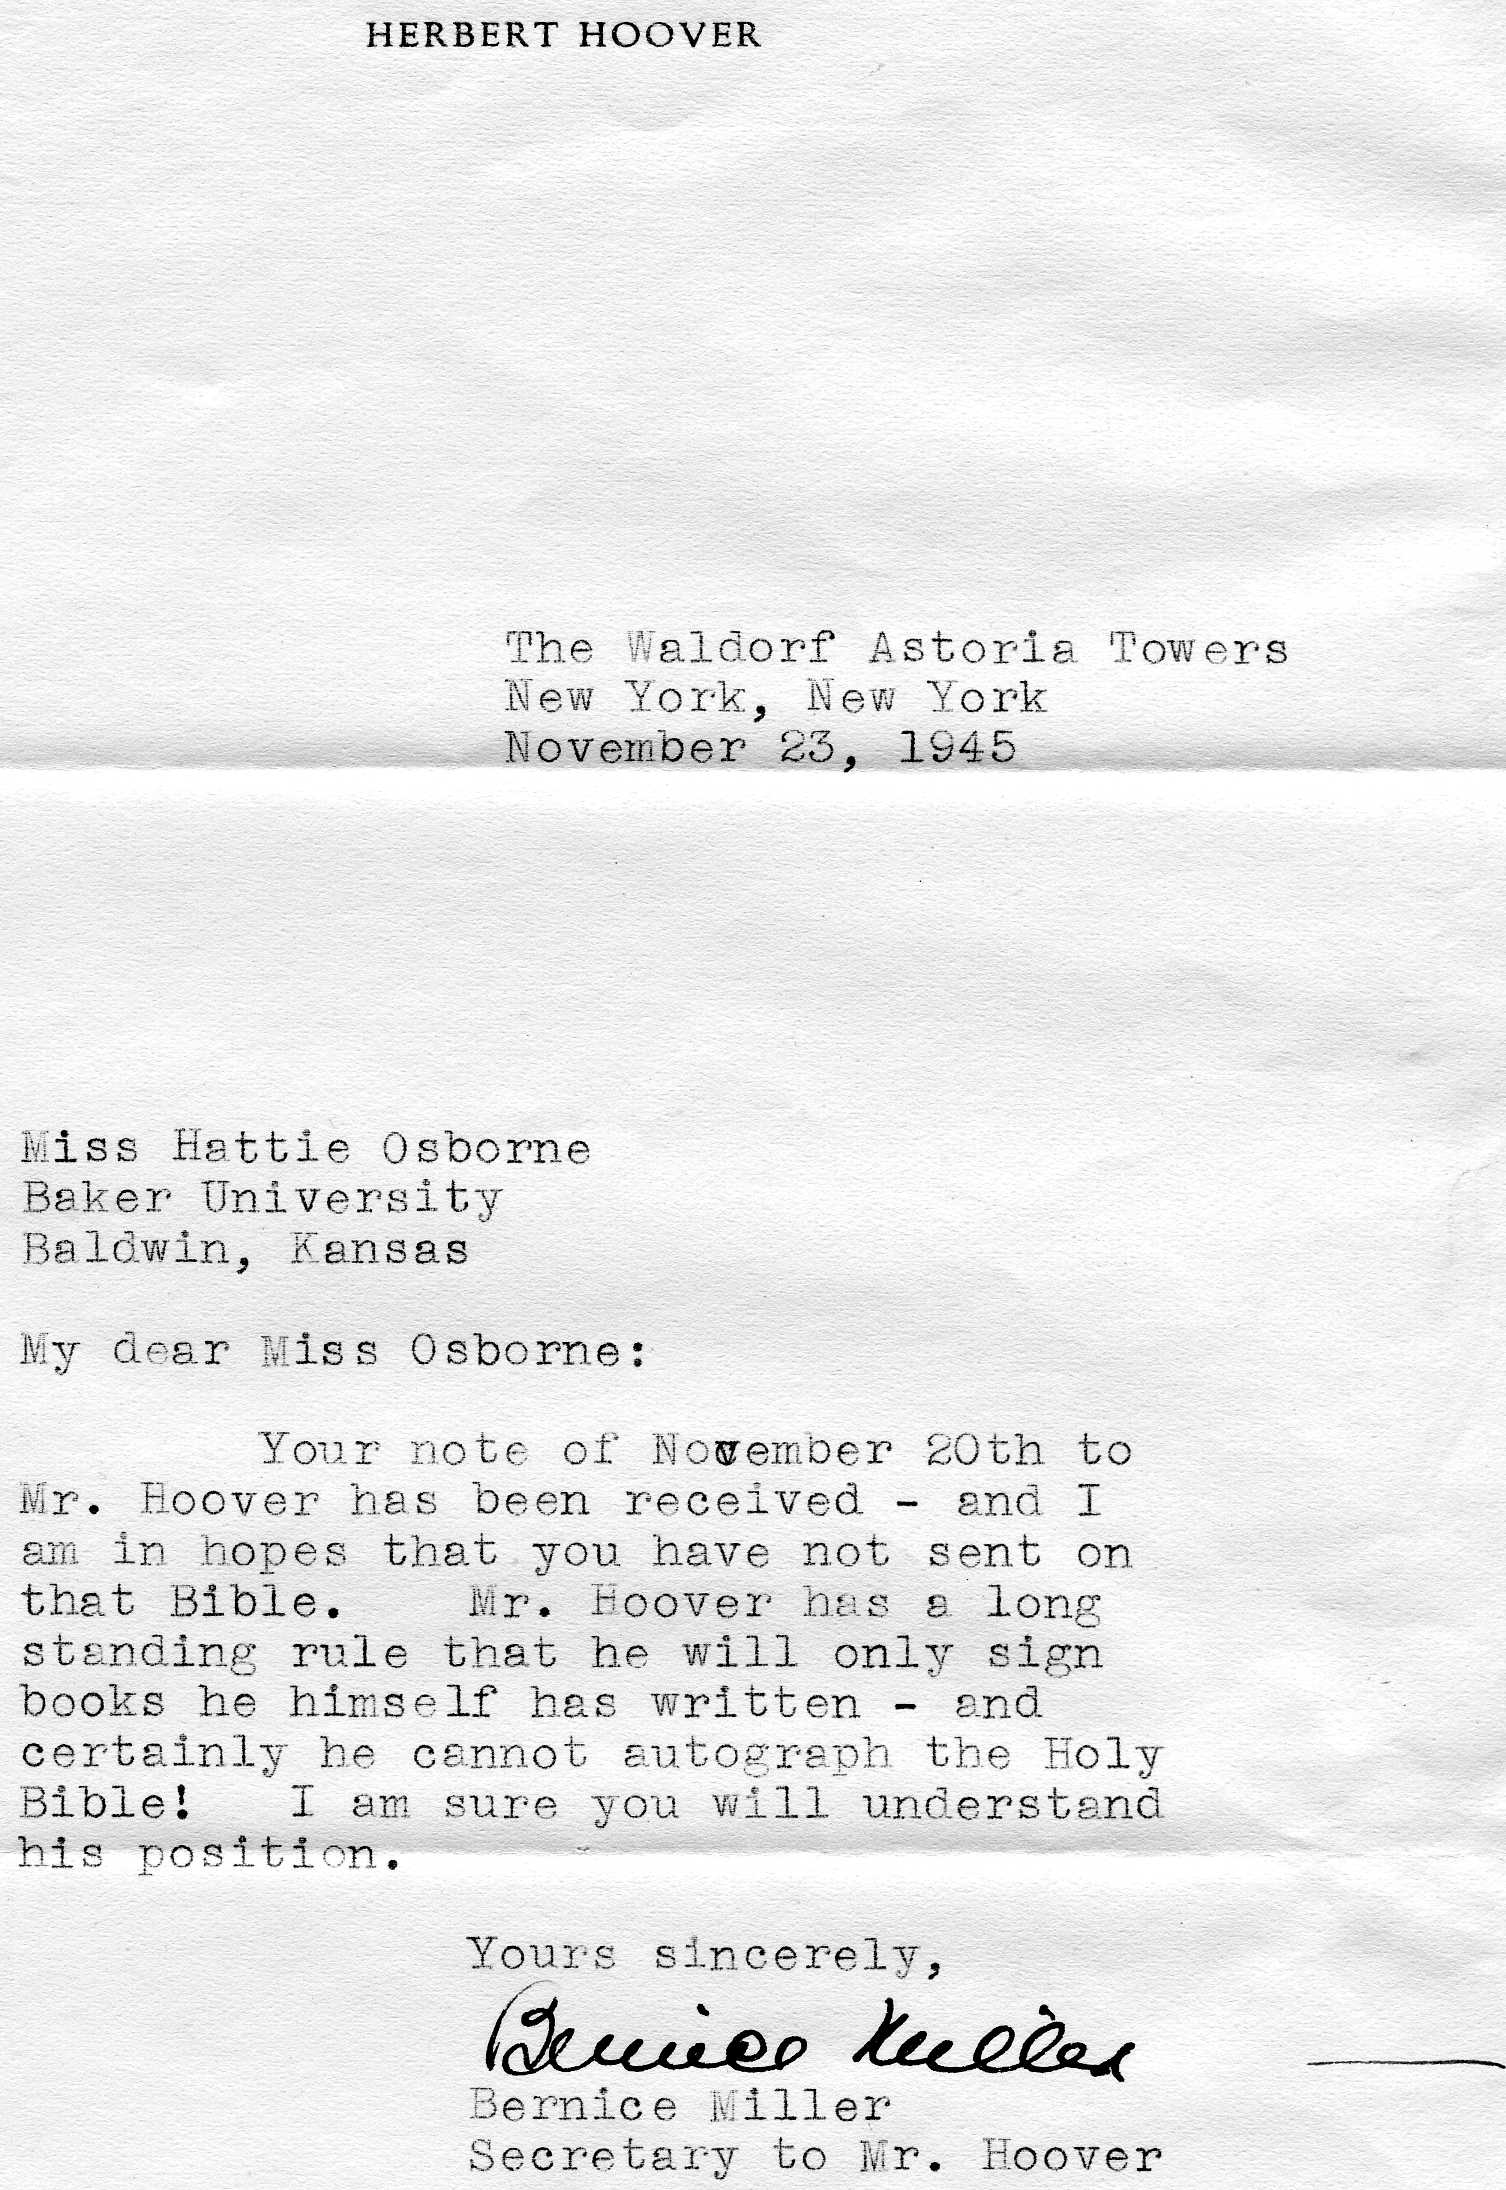 Letter from Hoover's Office